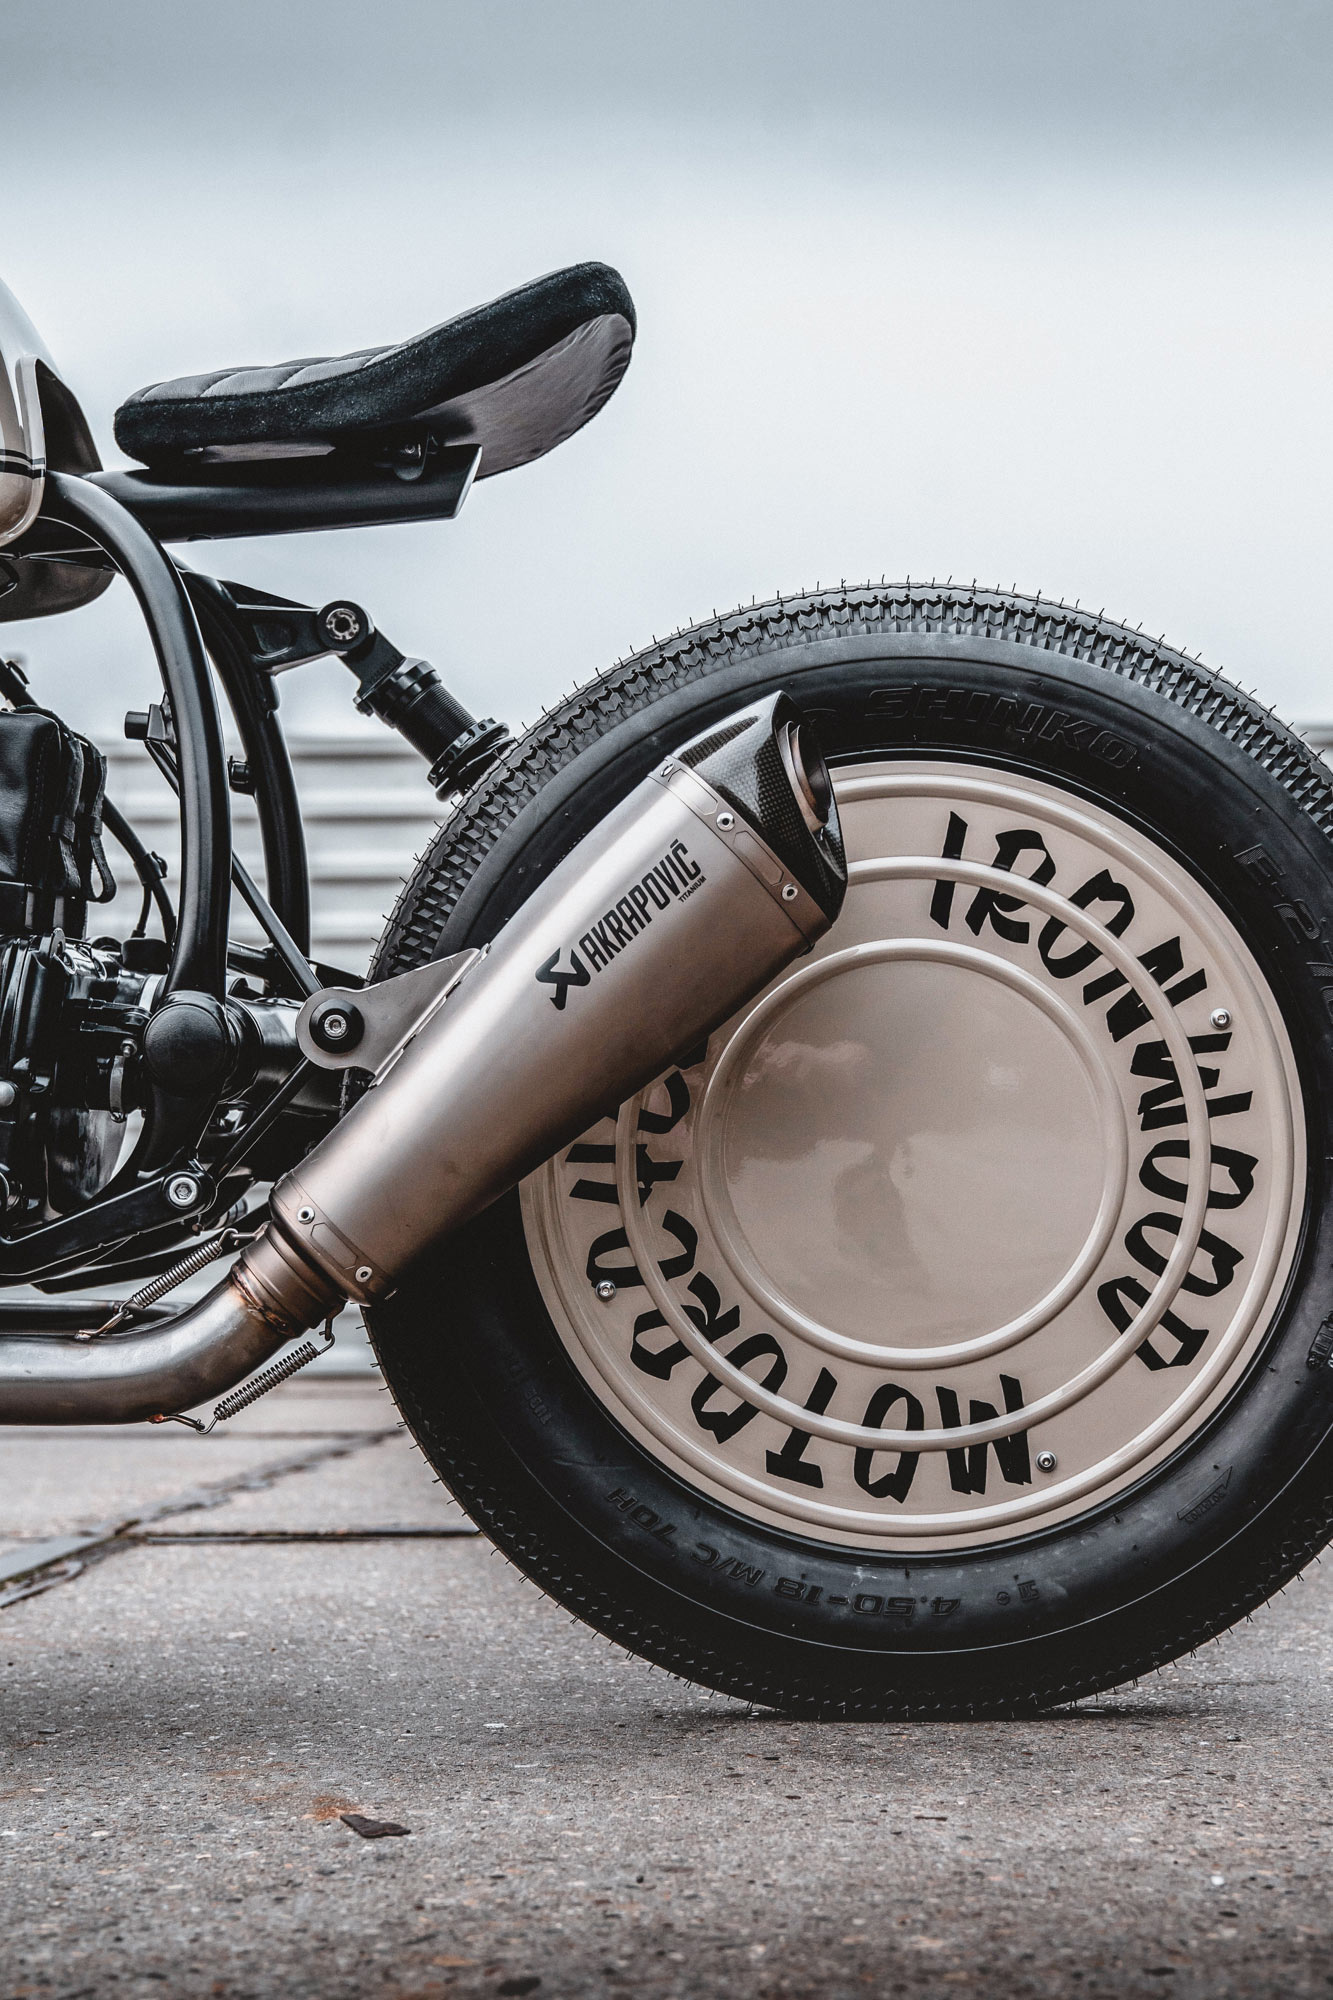 This Custom Bmw R80 Bobber Makes Coffee And Star Wars A Dynamic Duo